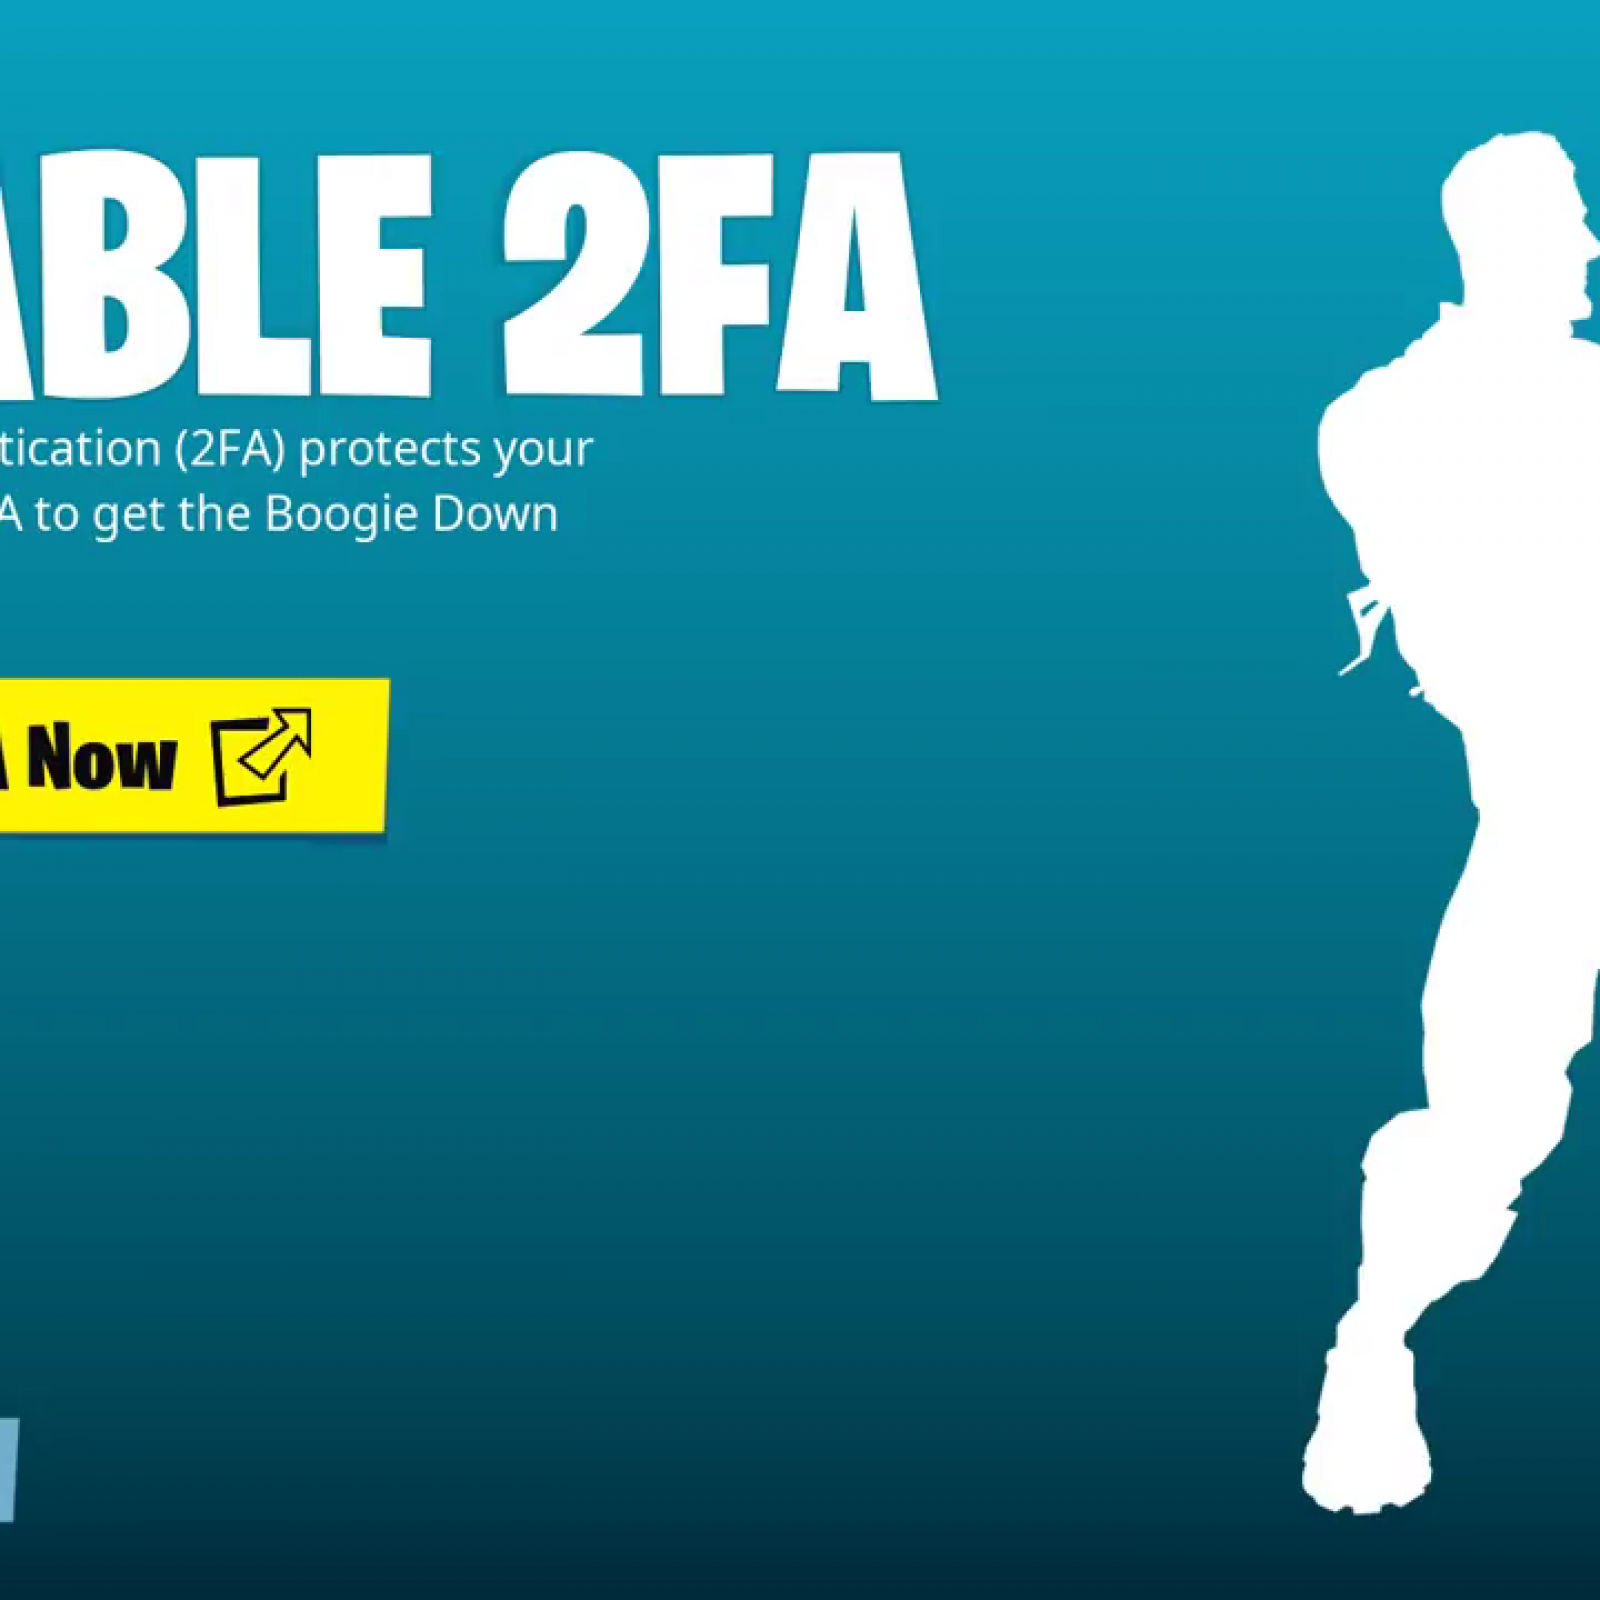 Fortnite' 2FA Guide - How to Get Boogie Down Free With 2